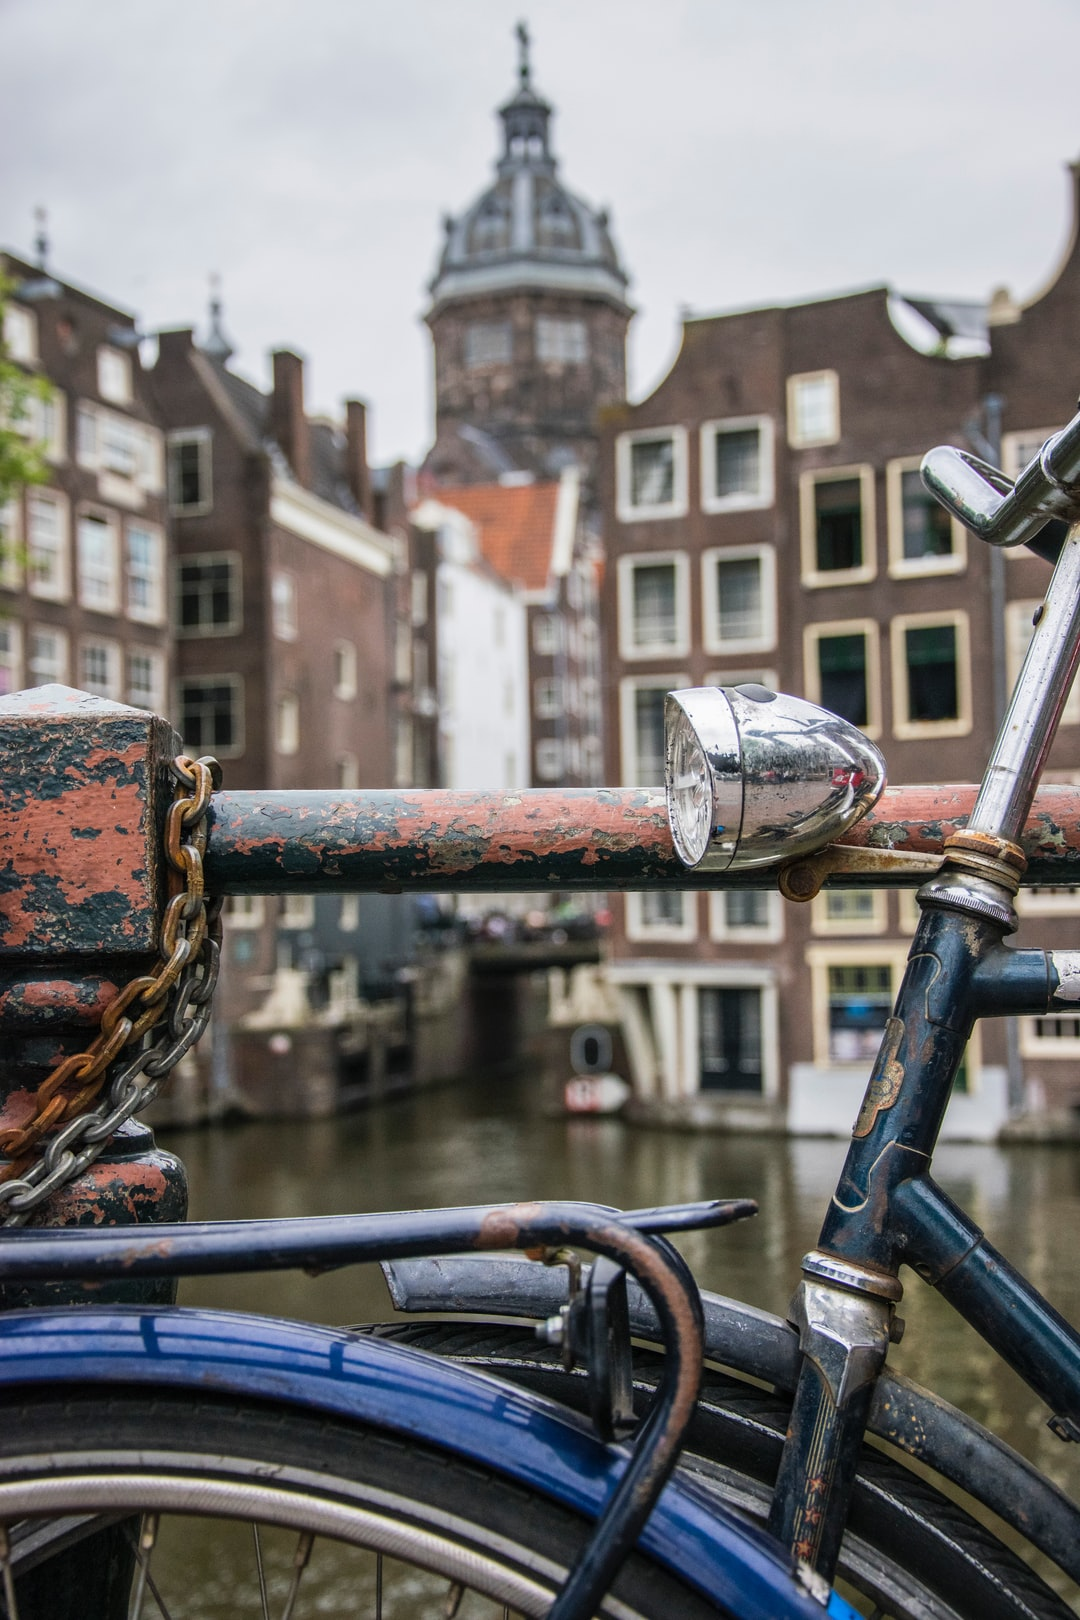 Details of Amsterdam